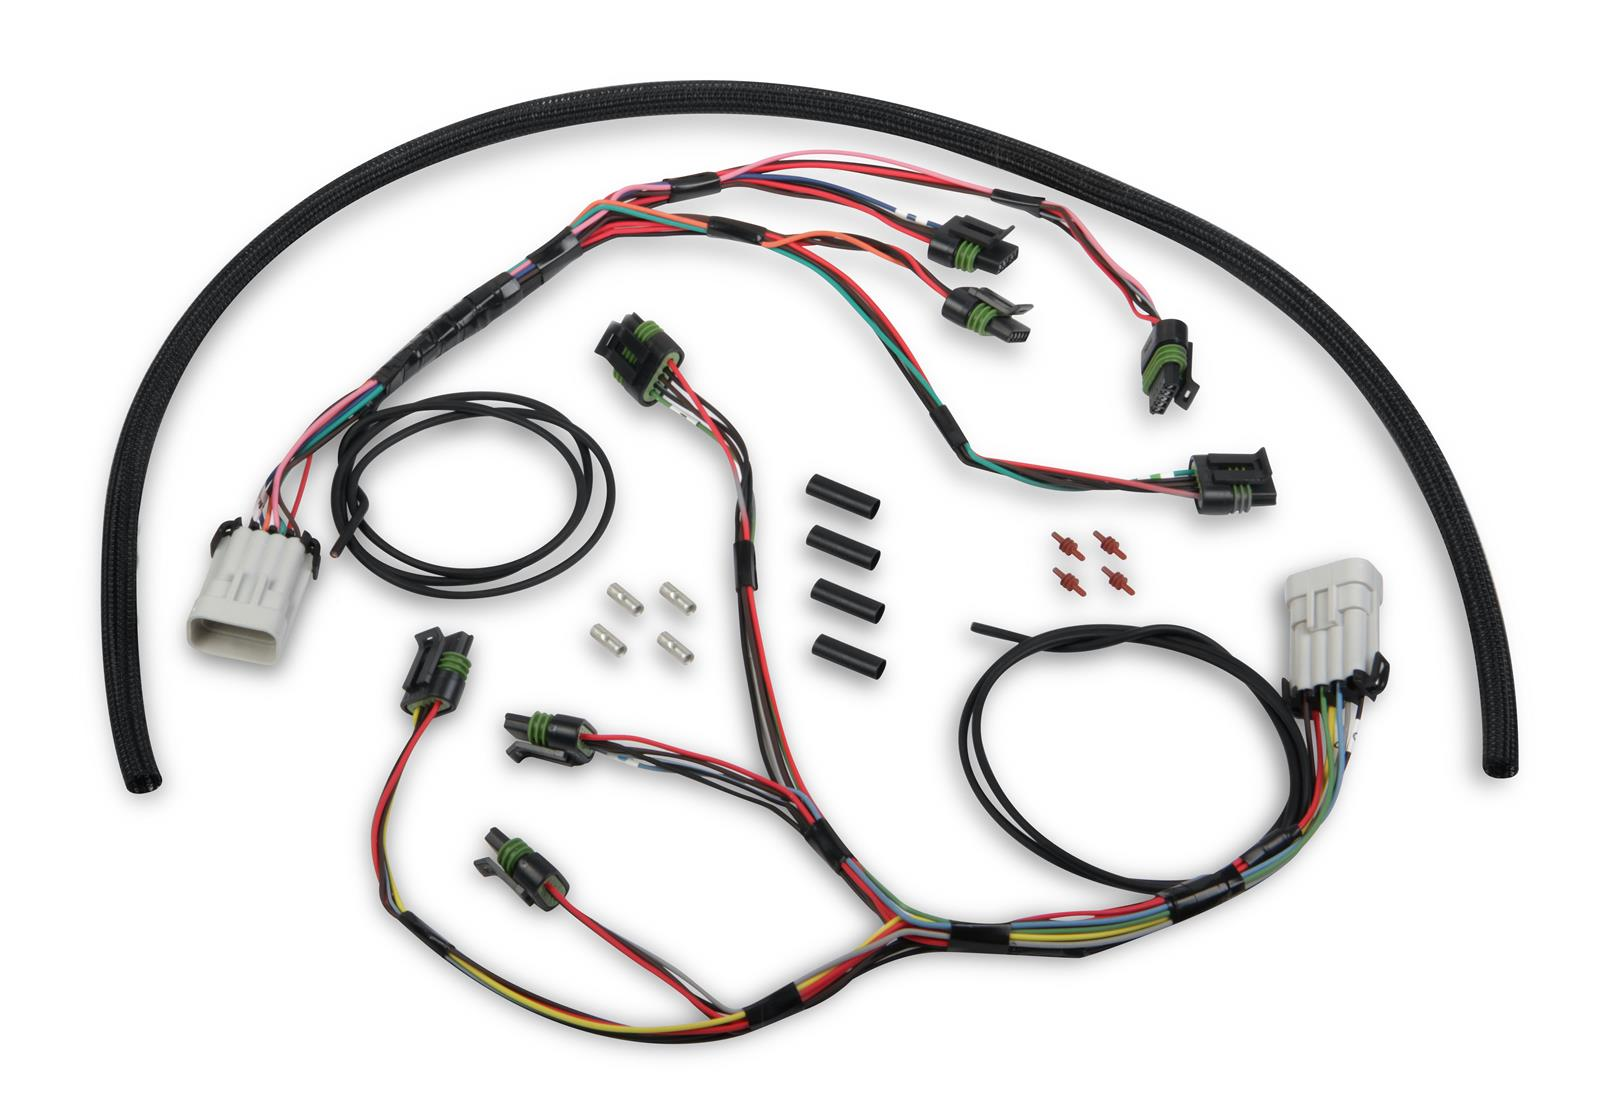 hly 558 312_xl holley hp efi smart coil sub harnesses 558 312 free shipping on Car Wiring Harness at readyjetset.co